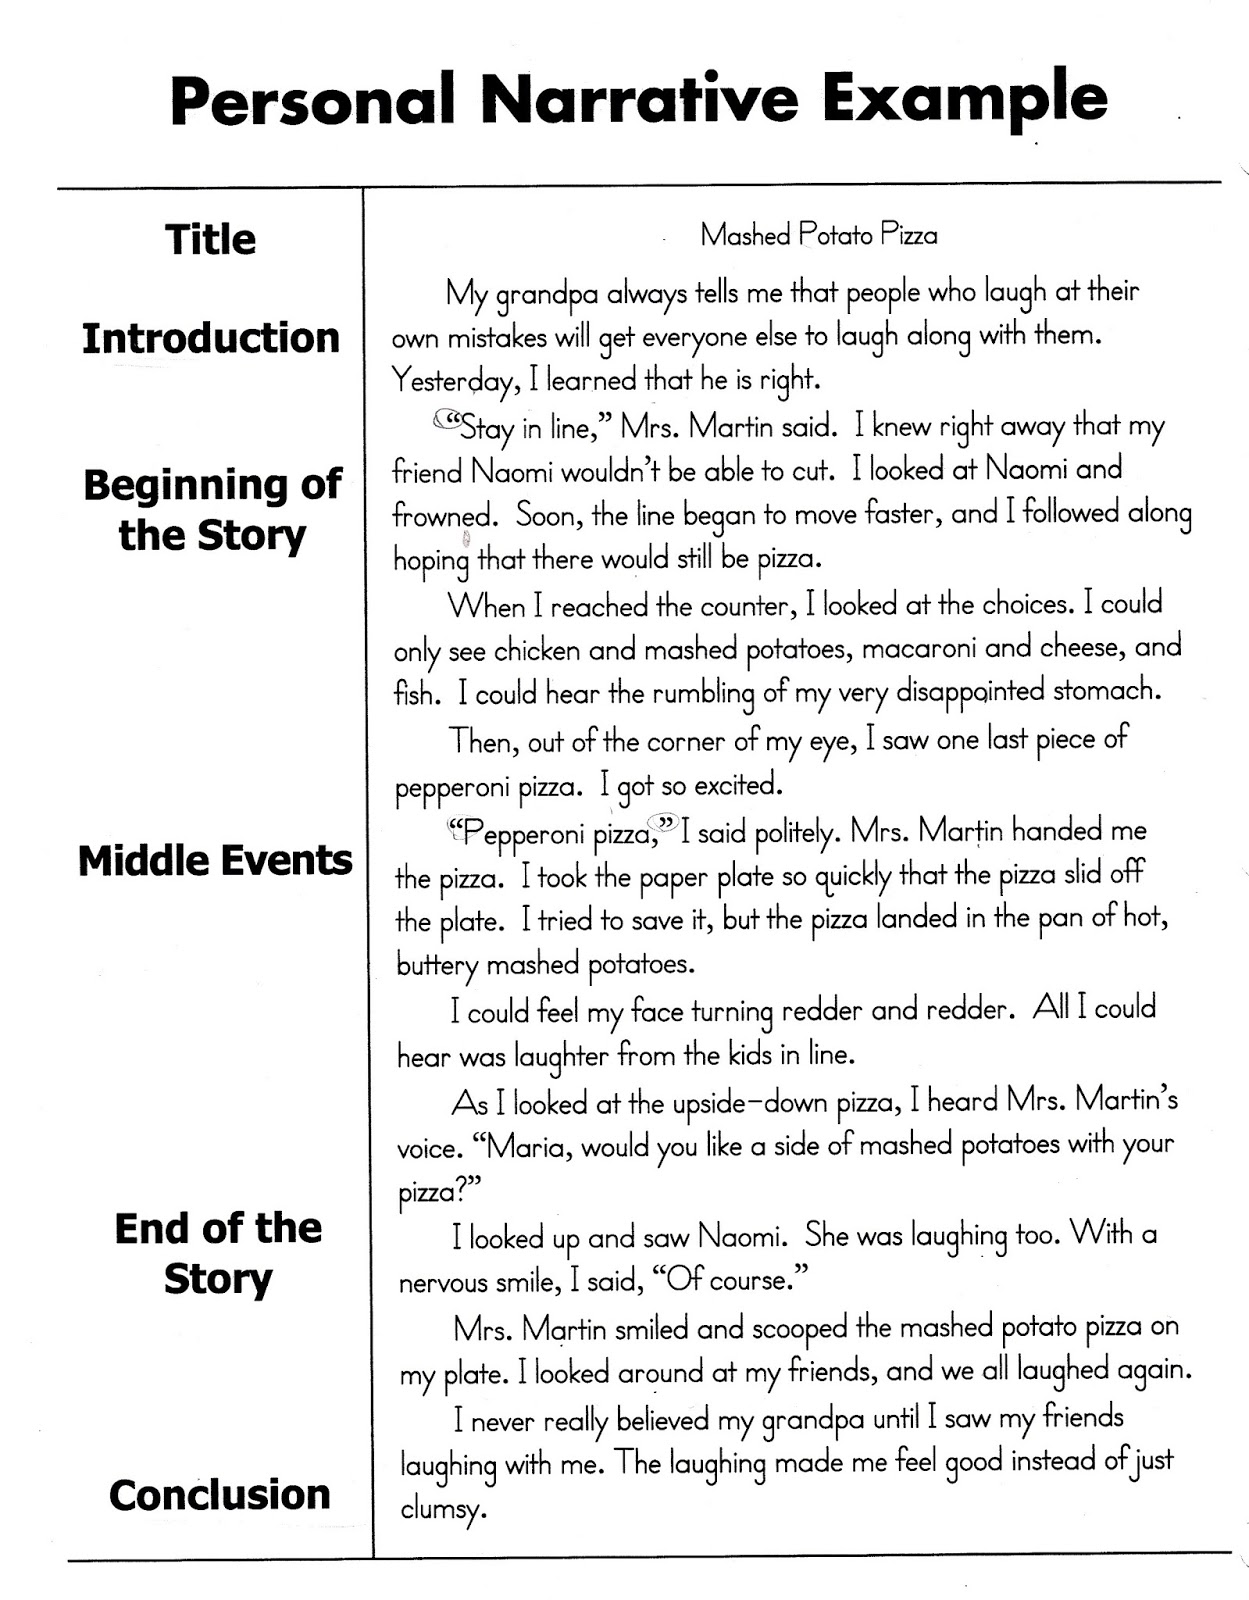 personal narrative essay traveling Search essay examples  personal account of a life changing experience  711 words 2 pages a personal narrative on a life-changing experience 1,173 words 3.